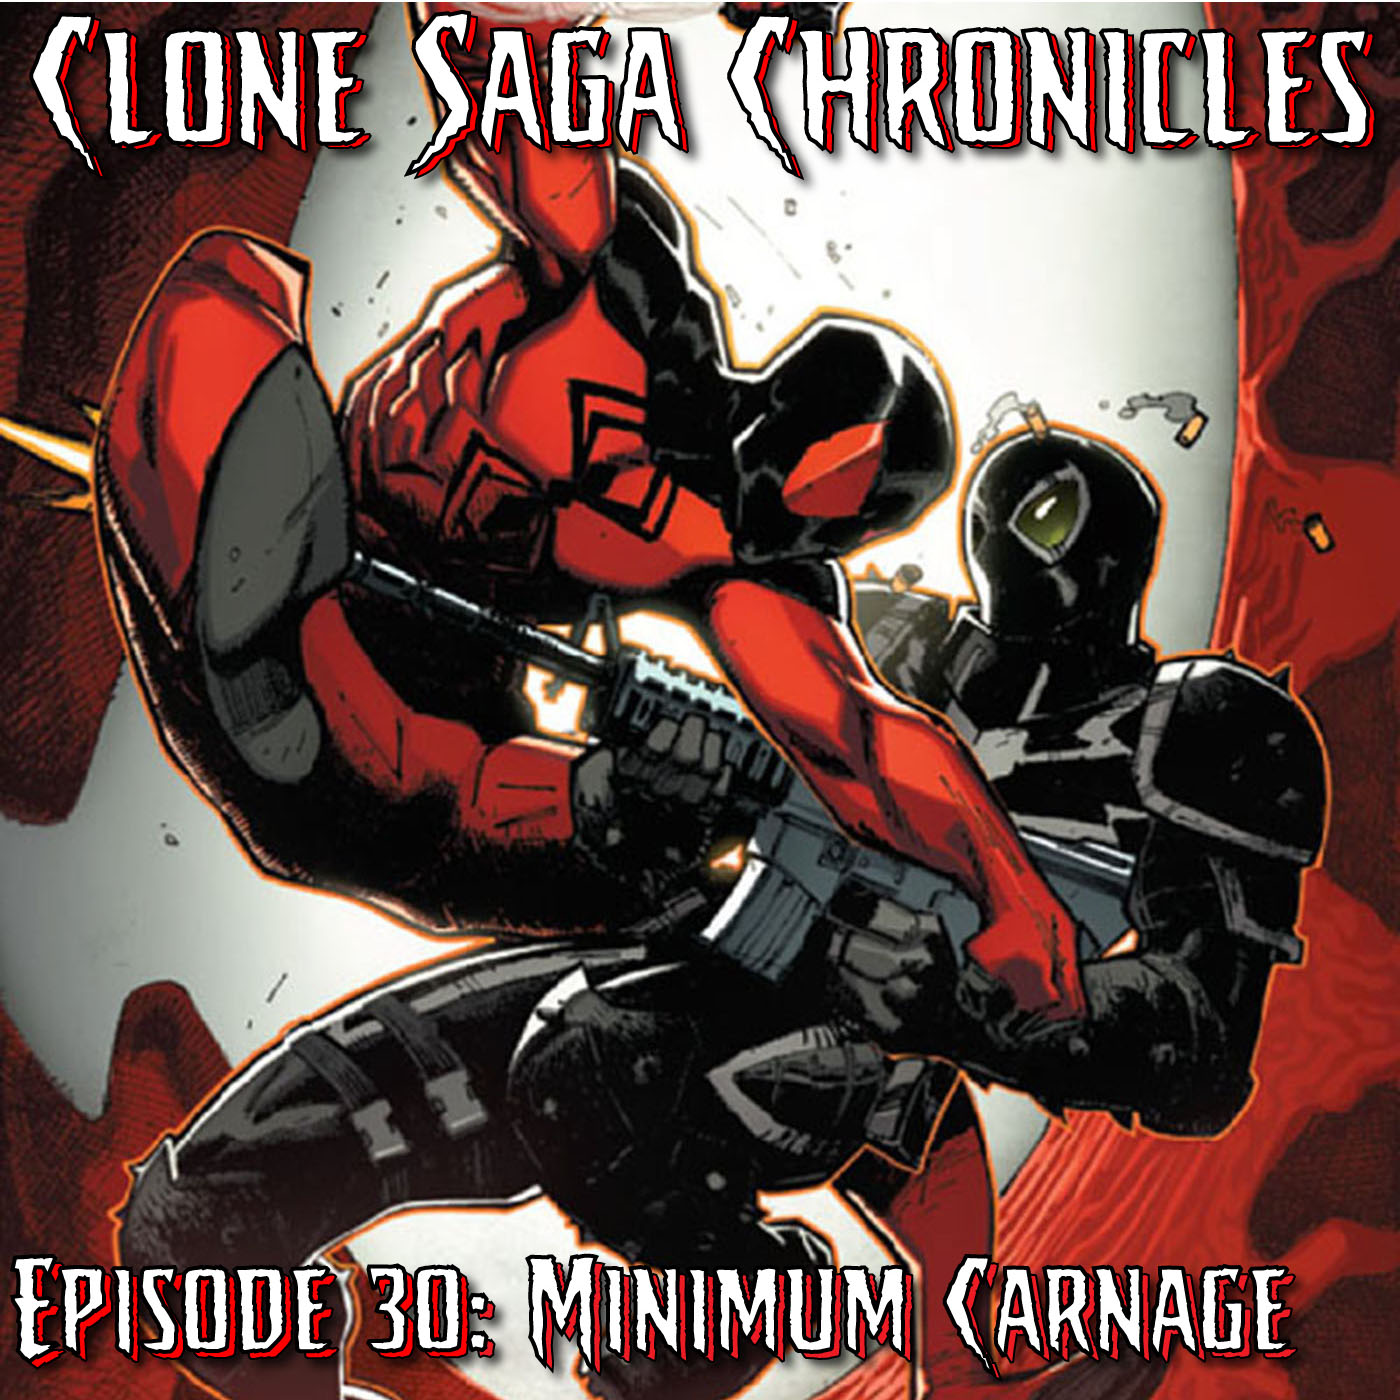 CSC Episode 30: Minimum Carnage (Dec12/Jan13)